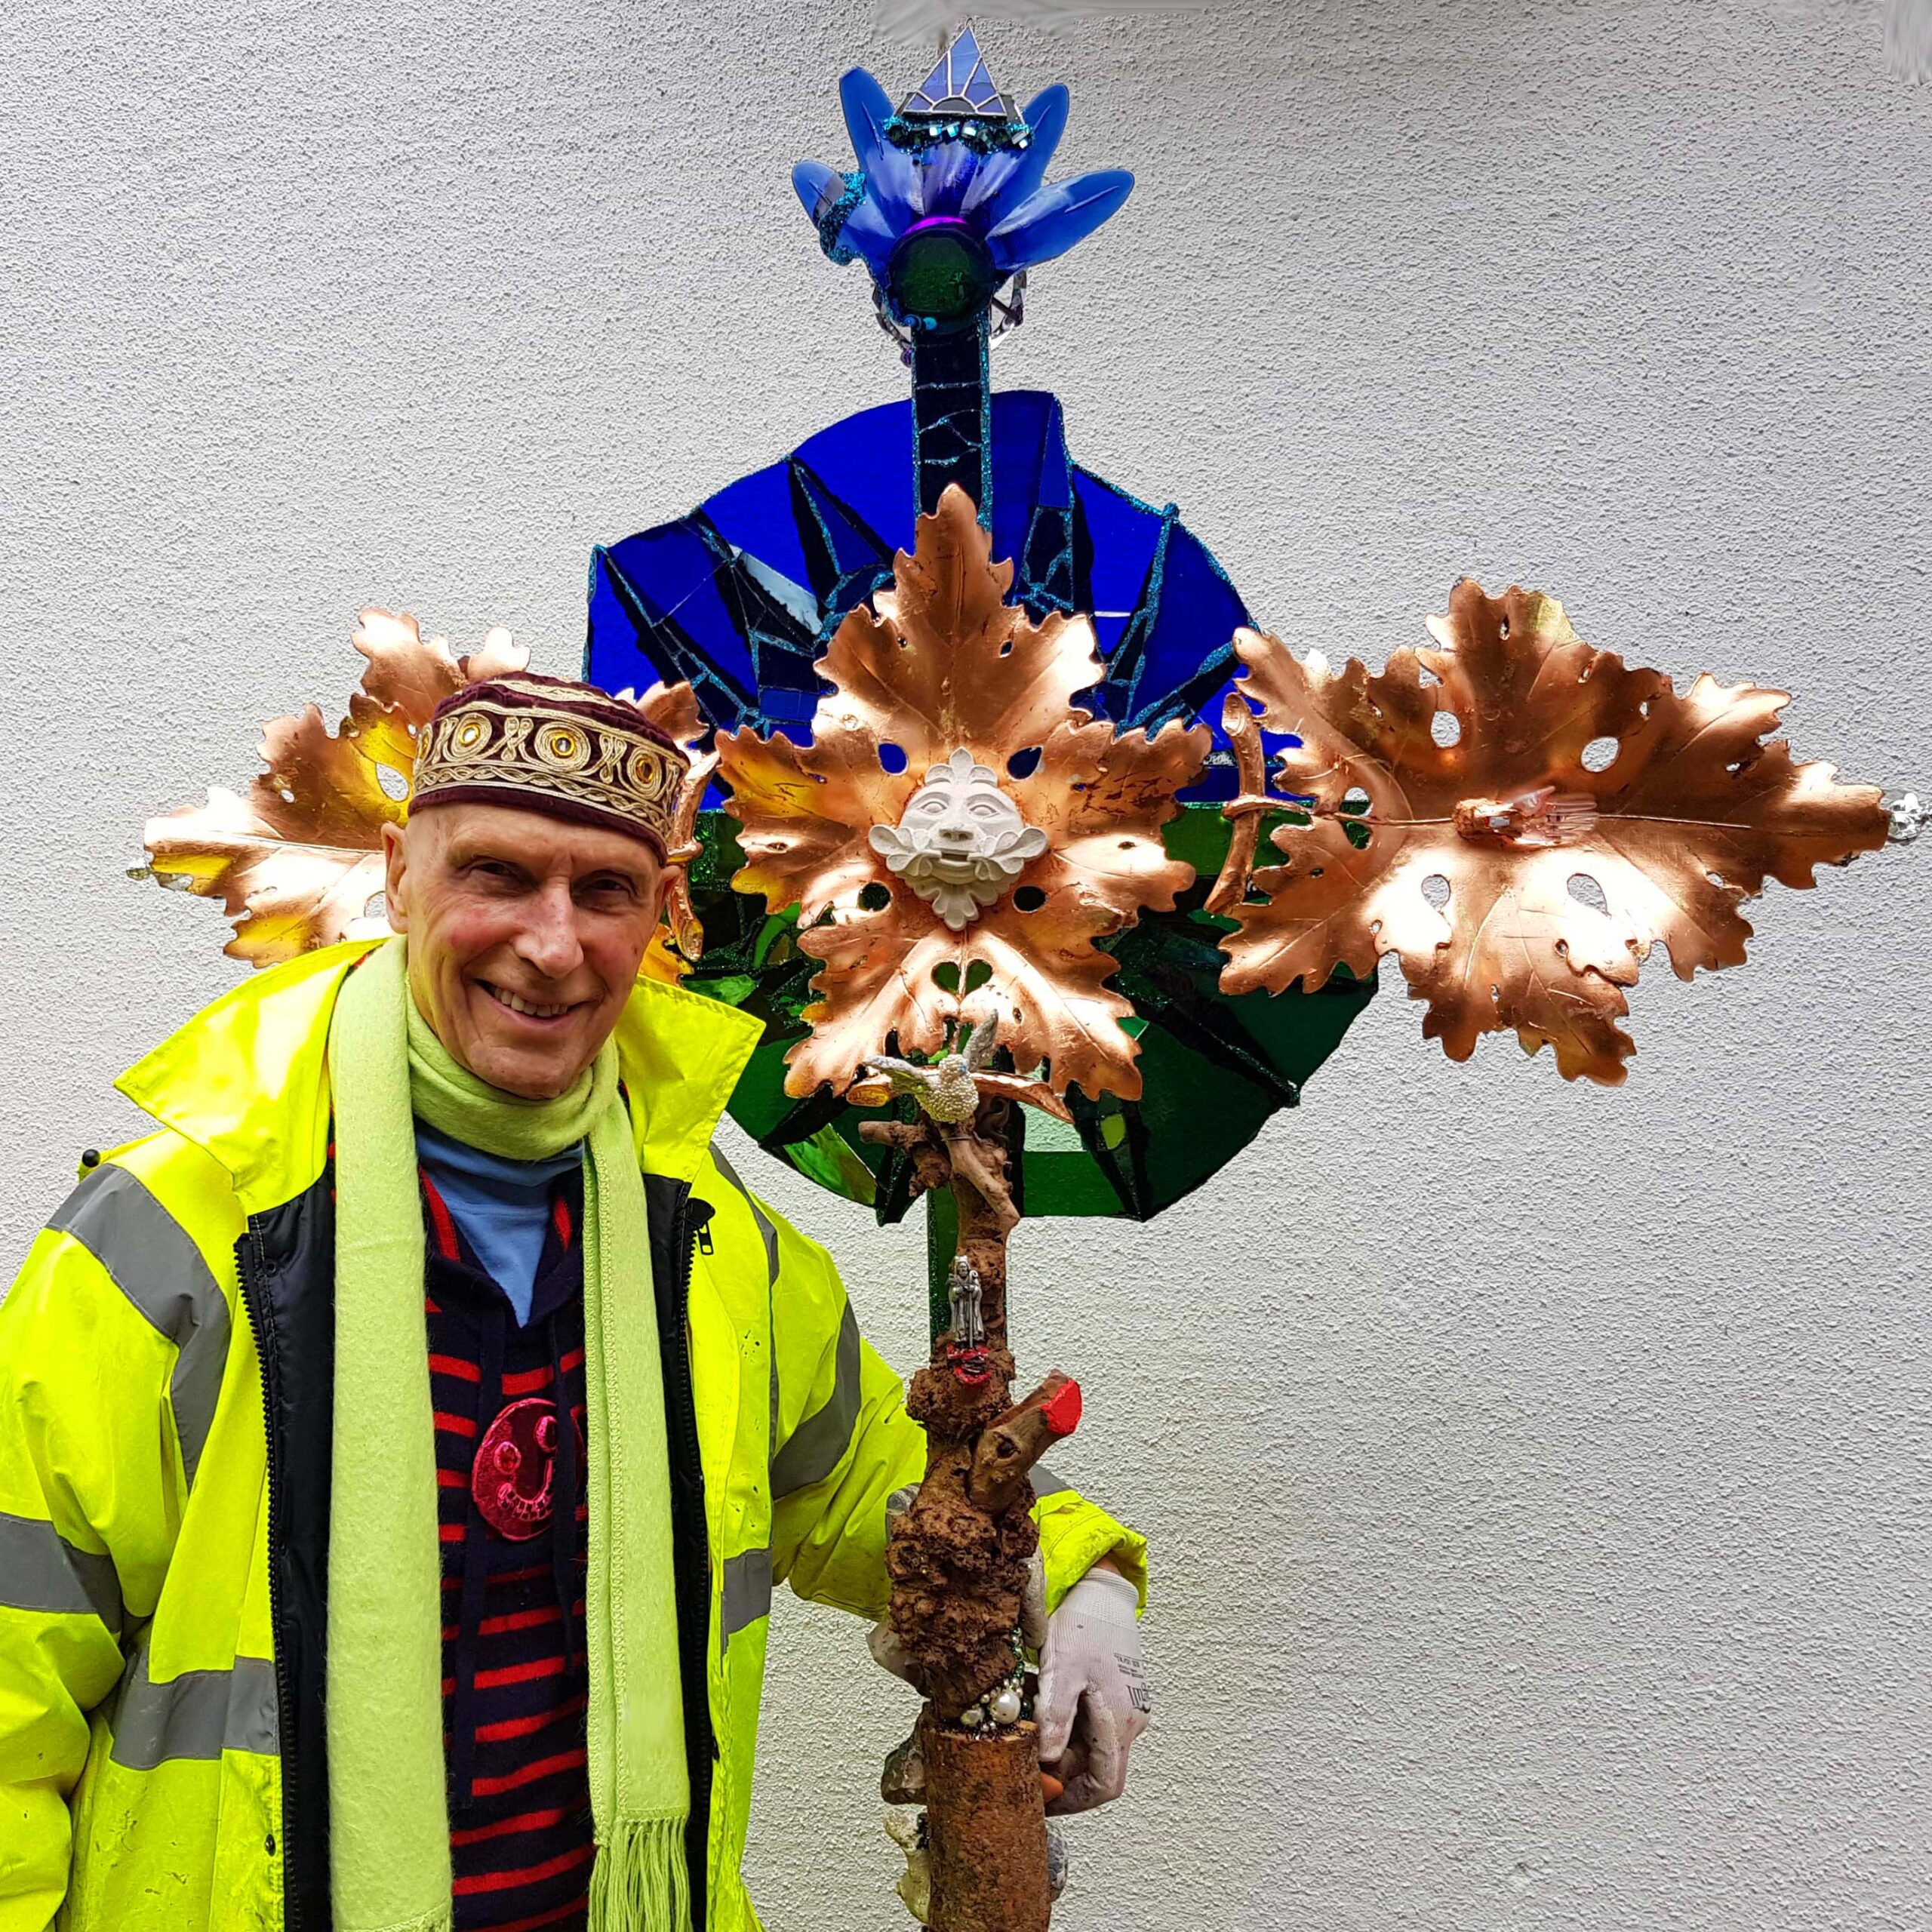 Sculptor Creates Commemorative Cross for St David's Cathedral